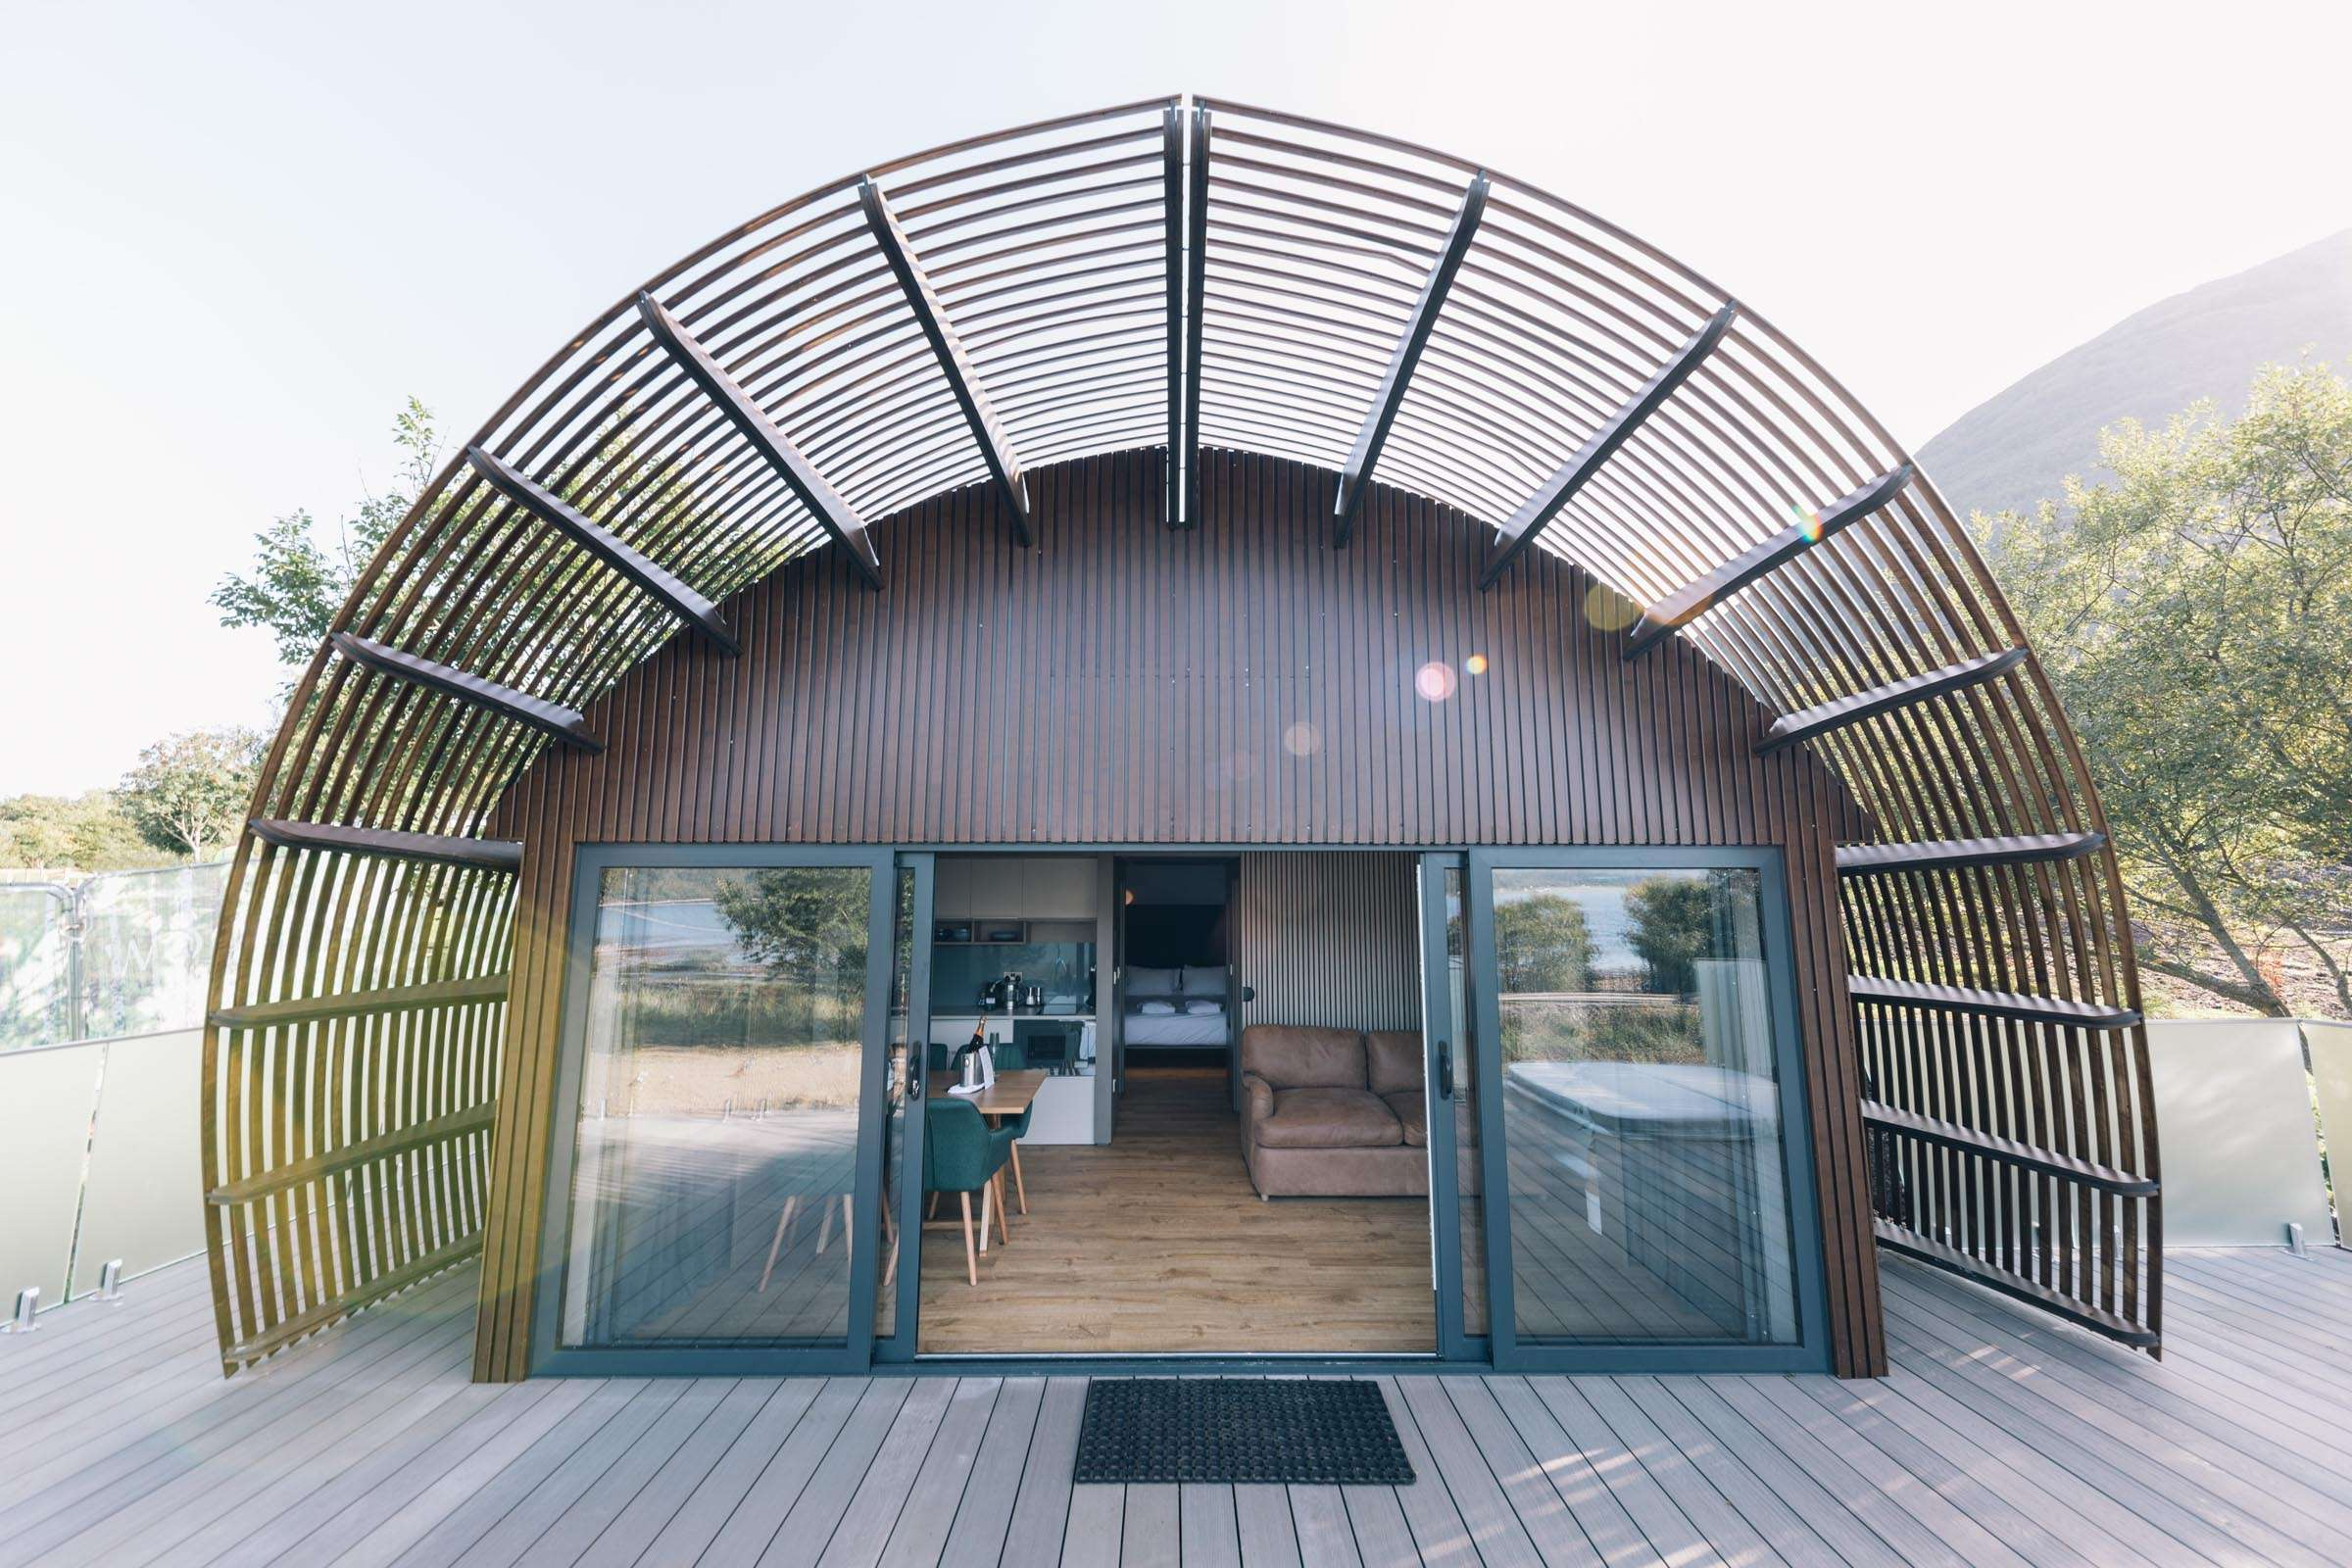 Exterior of SeaBed Luxury Lookout Lodges with hot tubs at Woodlands Glencoe, Scotland